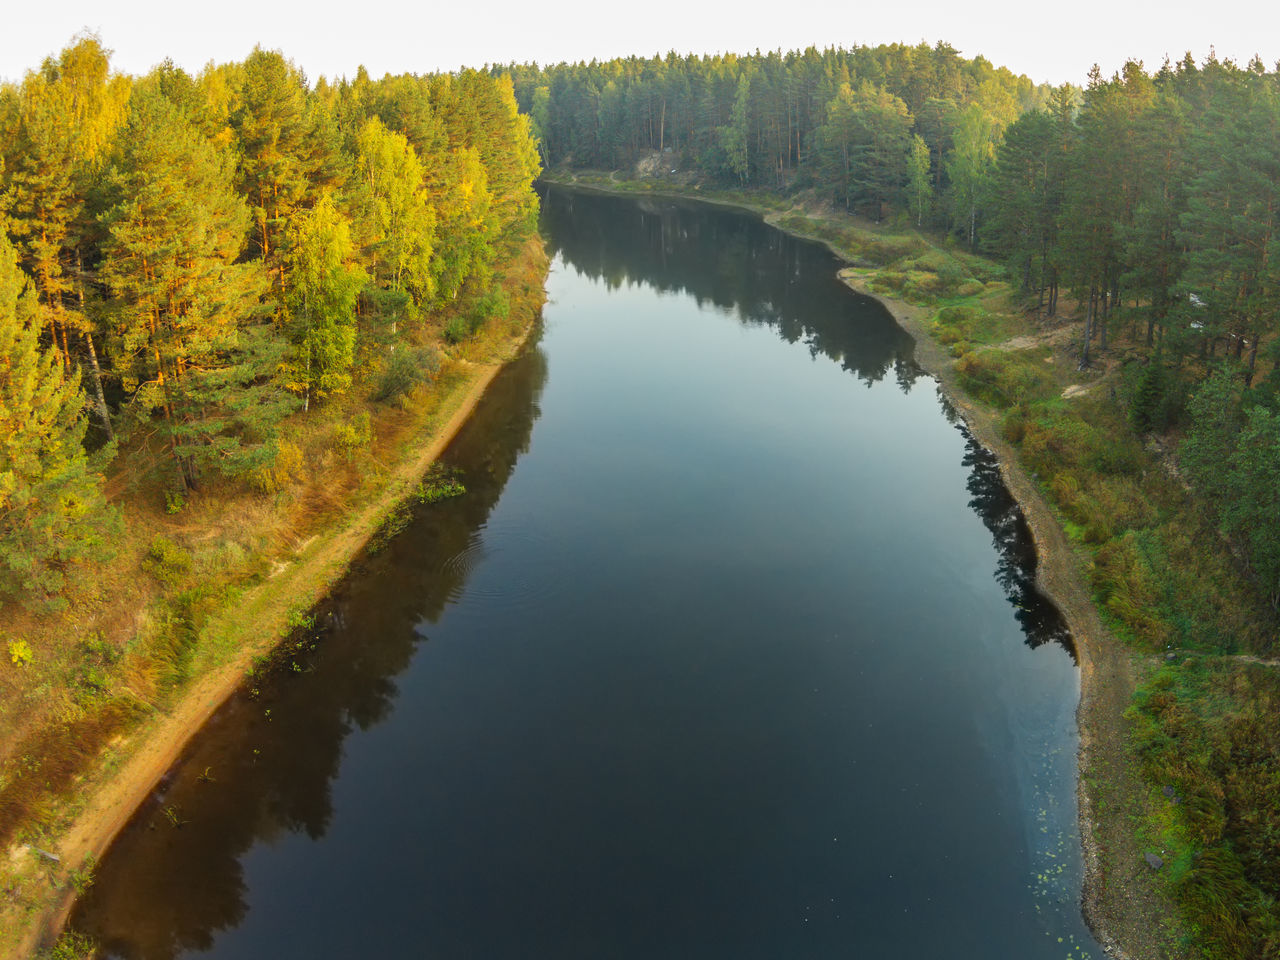 The view from the height of the river Mologa in the Tver Region. Autumn. A Bird's Eye View Aerial View Beauty In Nature Day Dji Dji Phantom Forest Grass Growth Lake Landscape Mologa Nature No People Outdoors Reflection River Scenics Top Perspective Tranquil Scene Tranquility Tree Water WoodLand